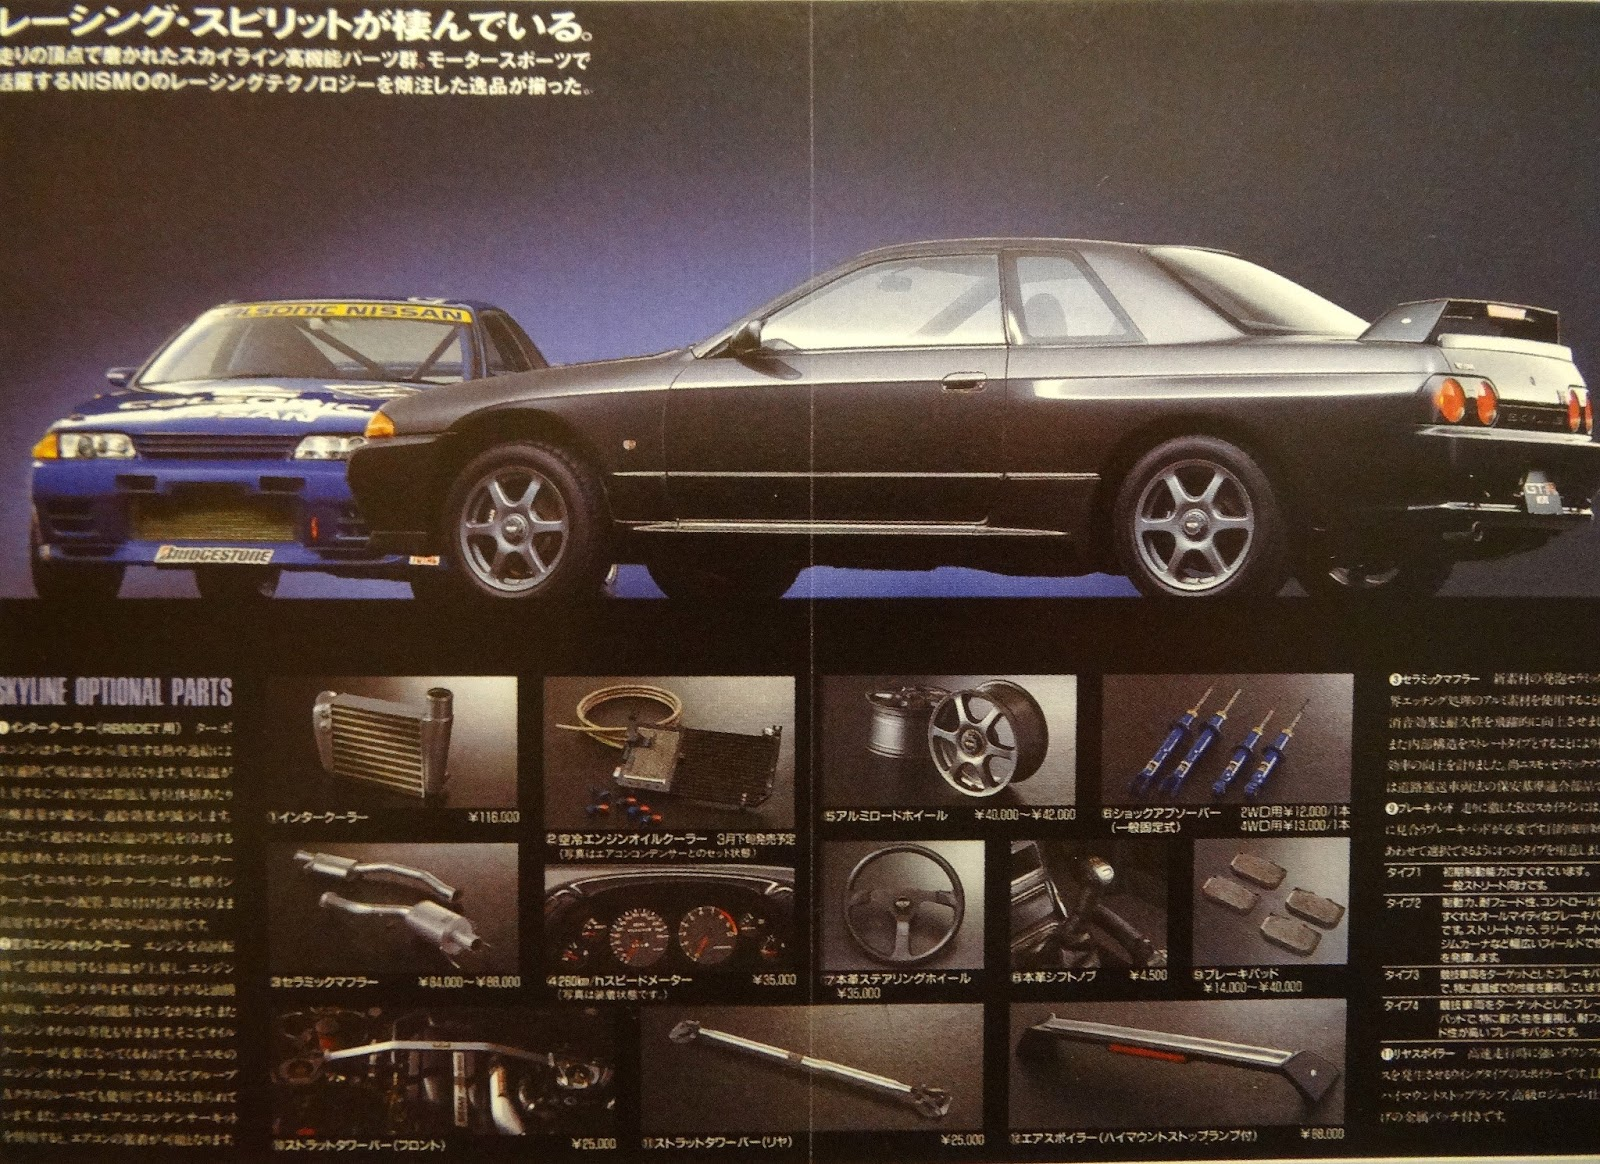 Nissan Skyline GT-R s in the USA Blog: Waiting on R34 GT-R : The 25 ...